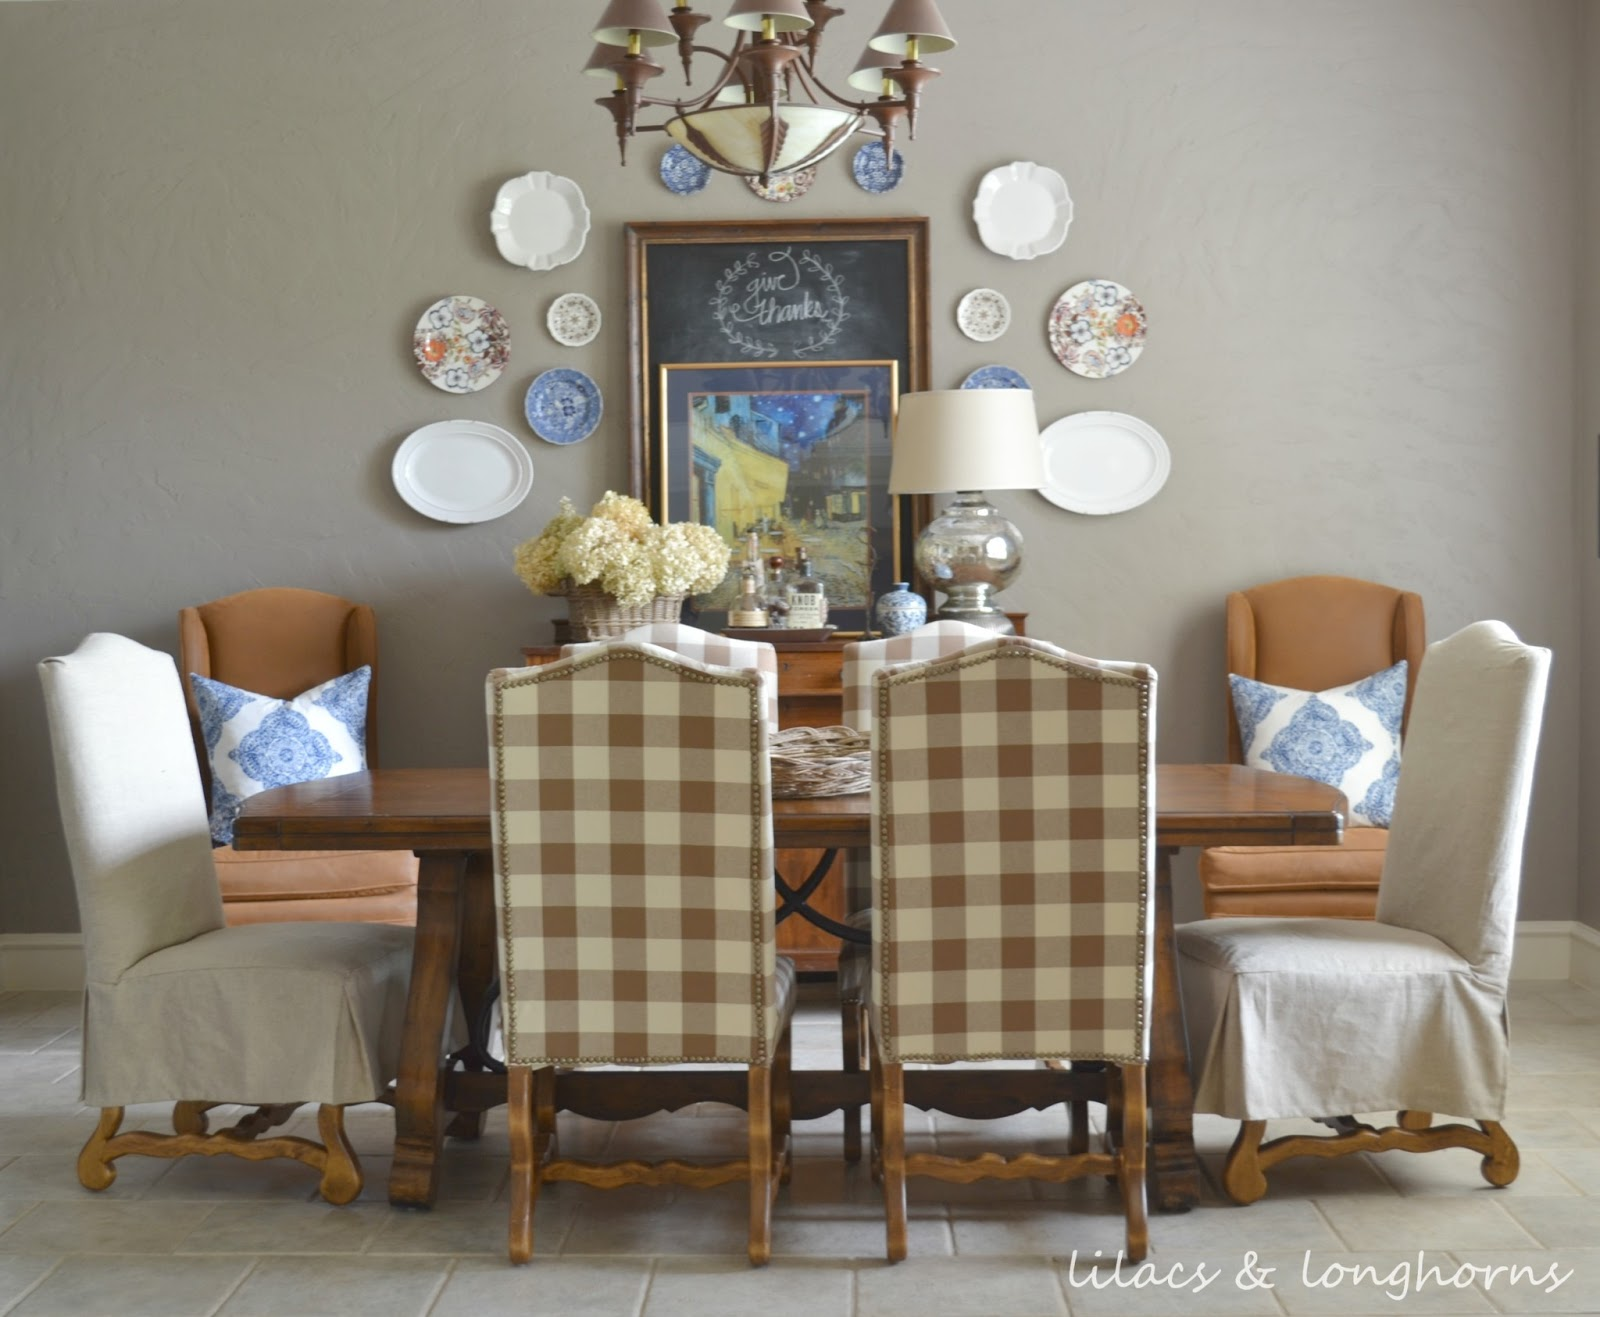 Reupholstered Dining Room Chairs From Julie At Lilacs U0026 Longhorns